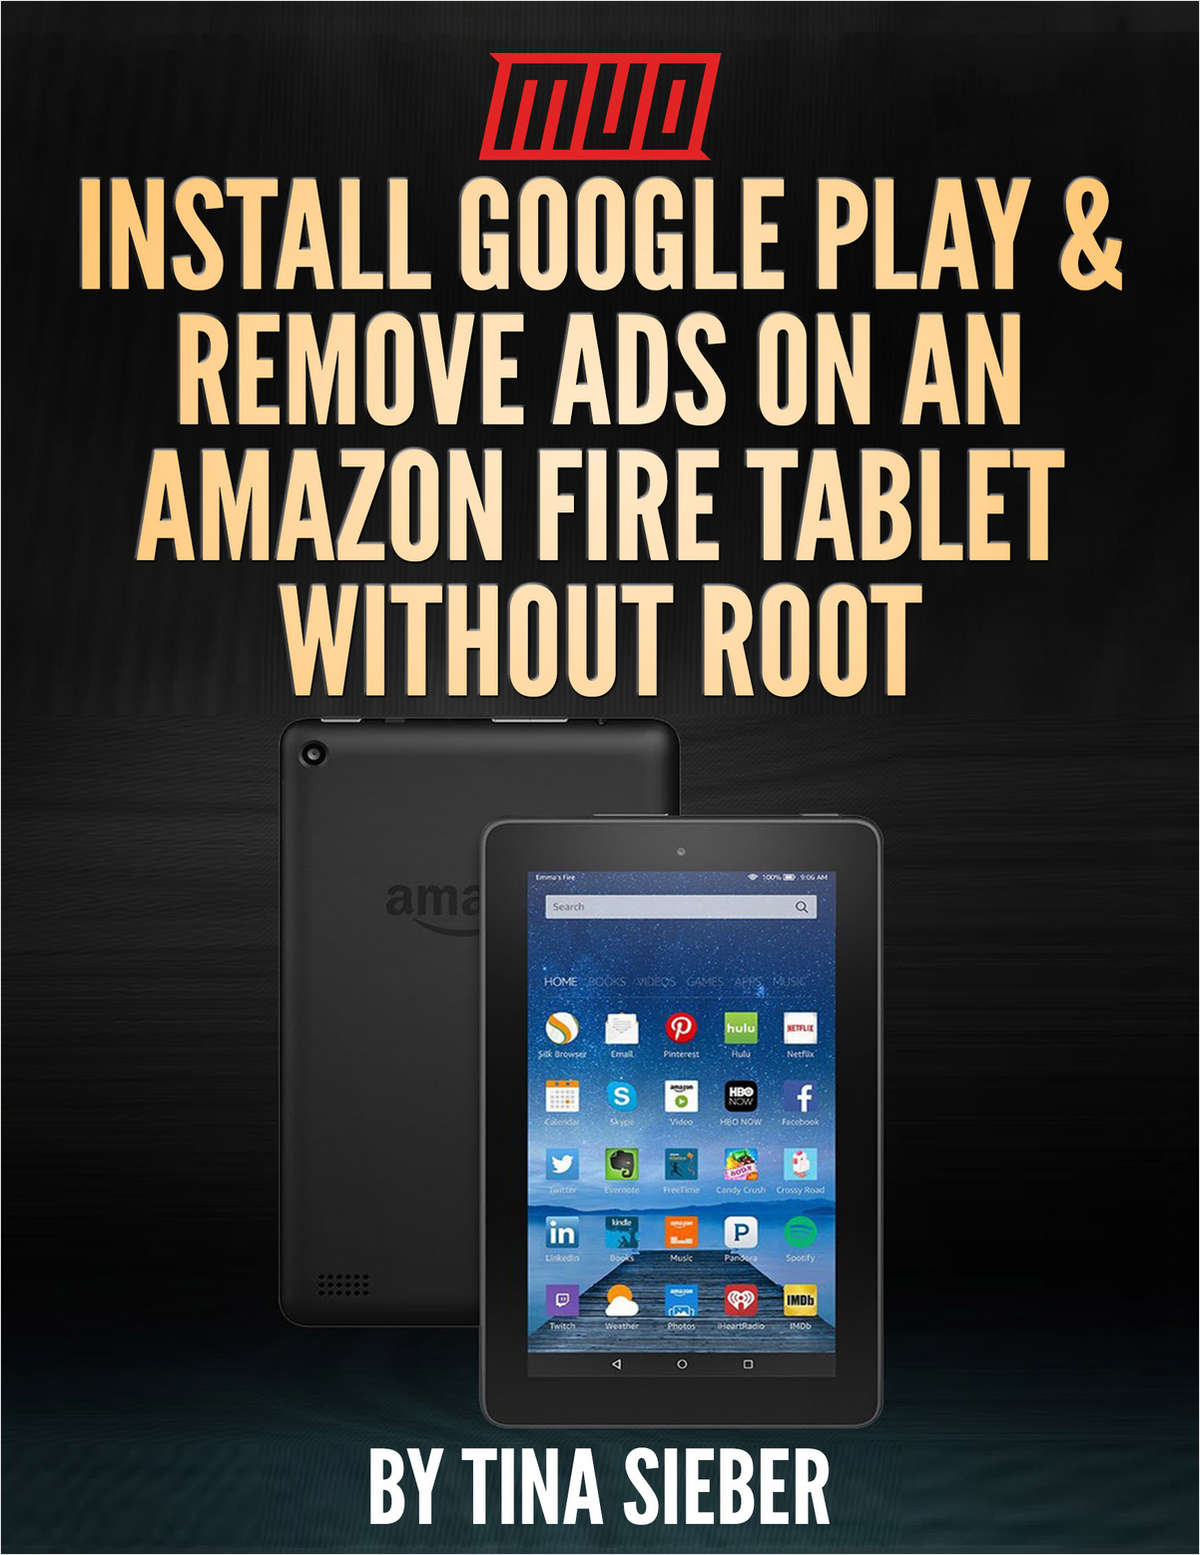 Install Google Play & Remove Ads on an Amazon Fire Tablet Without Root